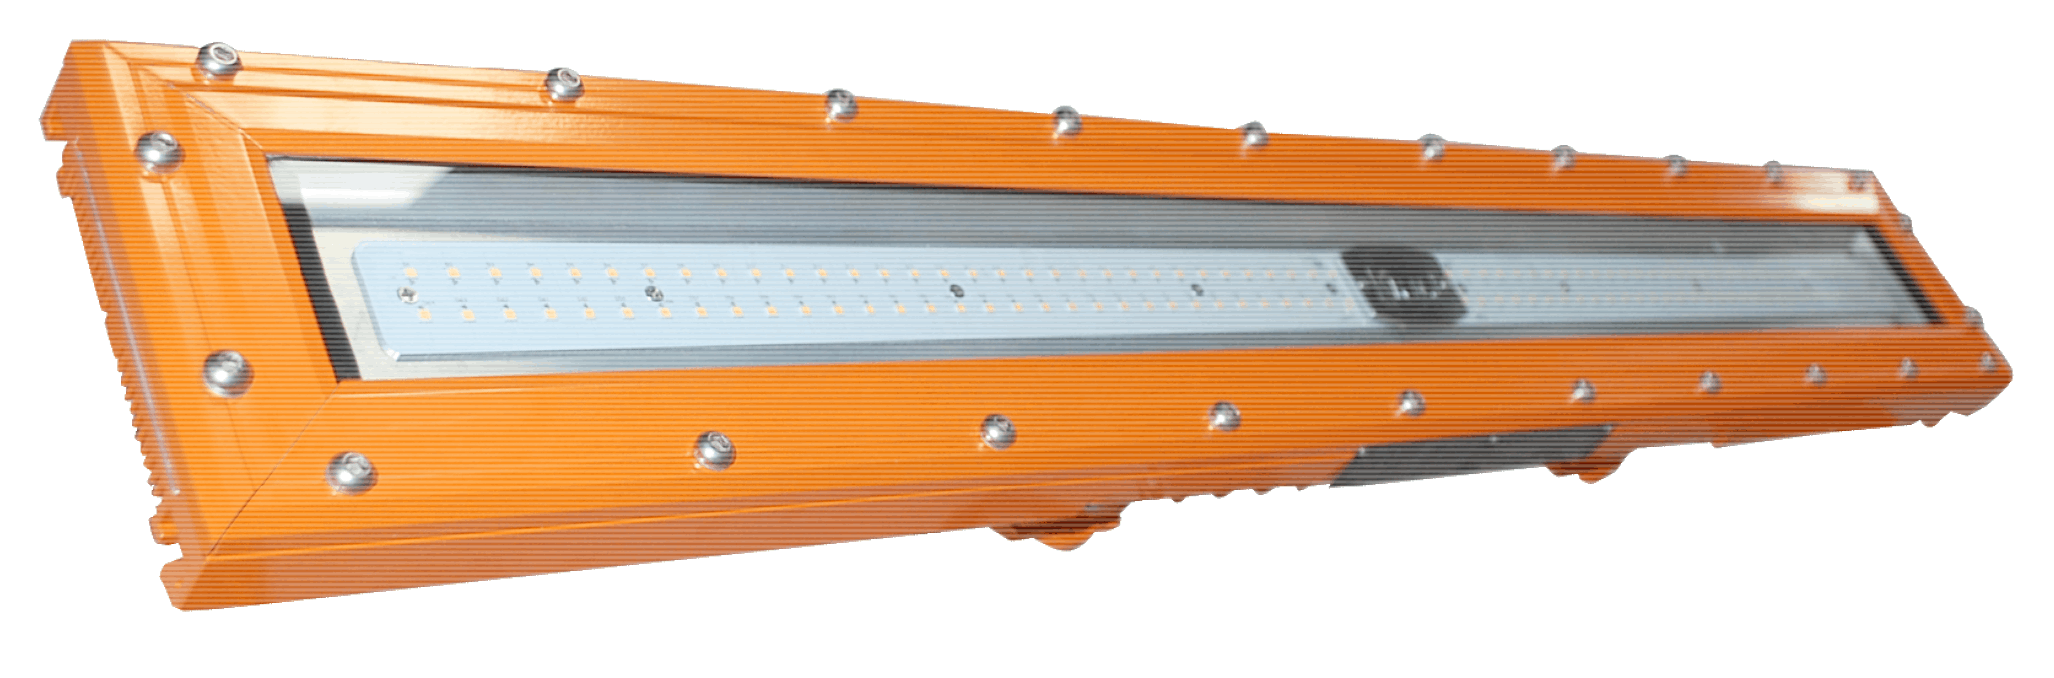 Ex-KSF481200 ATEX LED Lighting Swordfish 48W Emergency model 180min